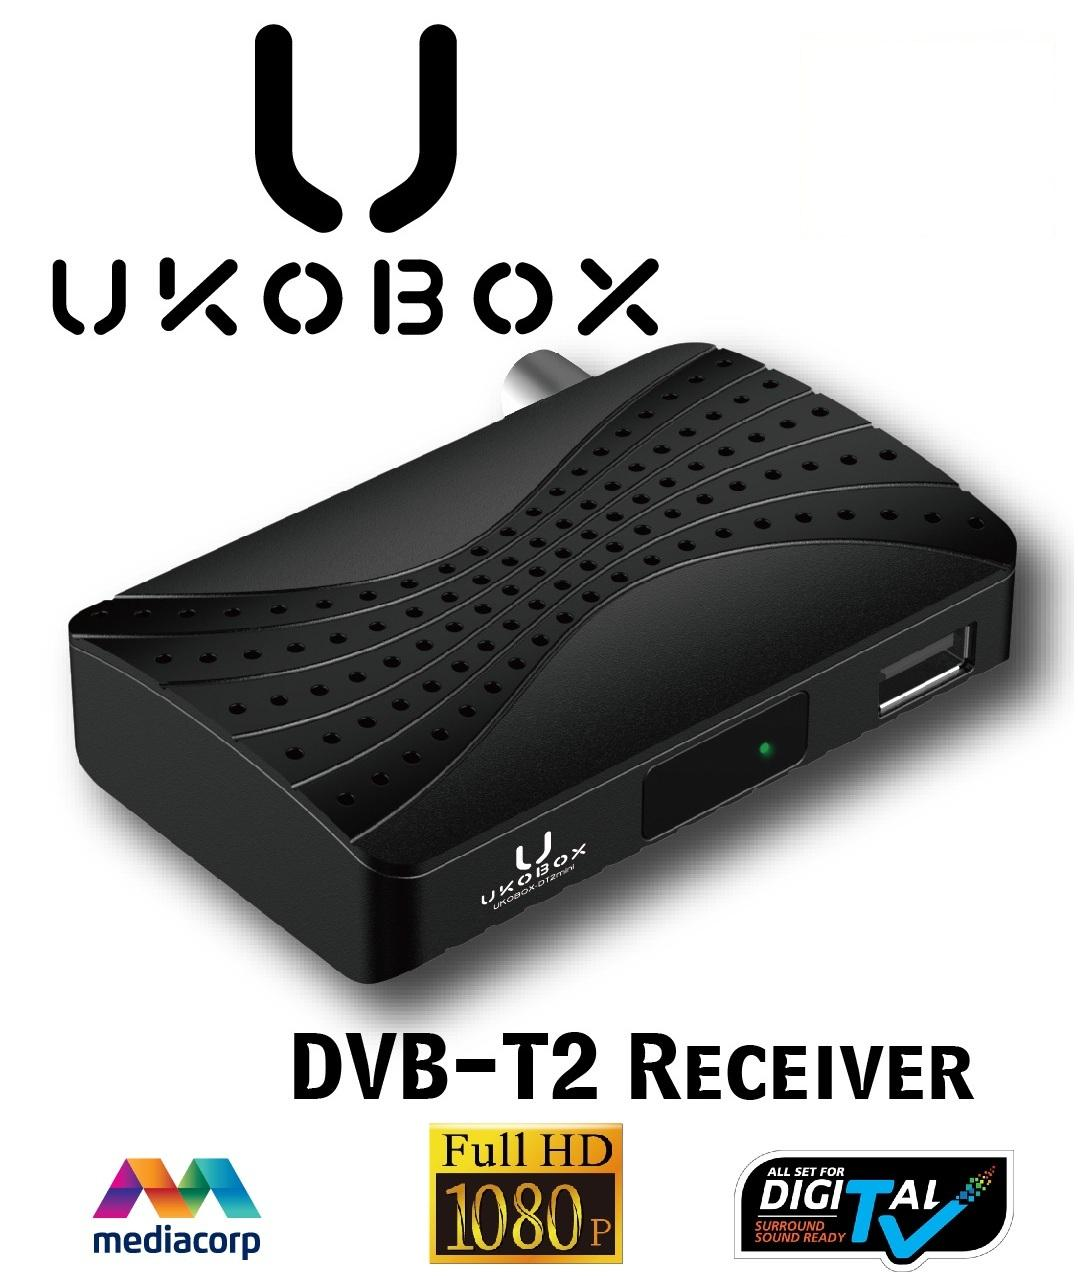 ★SG Warranty★ UKOBOX DVB-T2 Receiver / DVB-T2 Tunner / dvb t2 box / Digital TV Tuner with Antenna